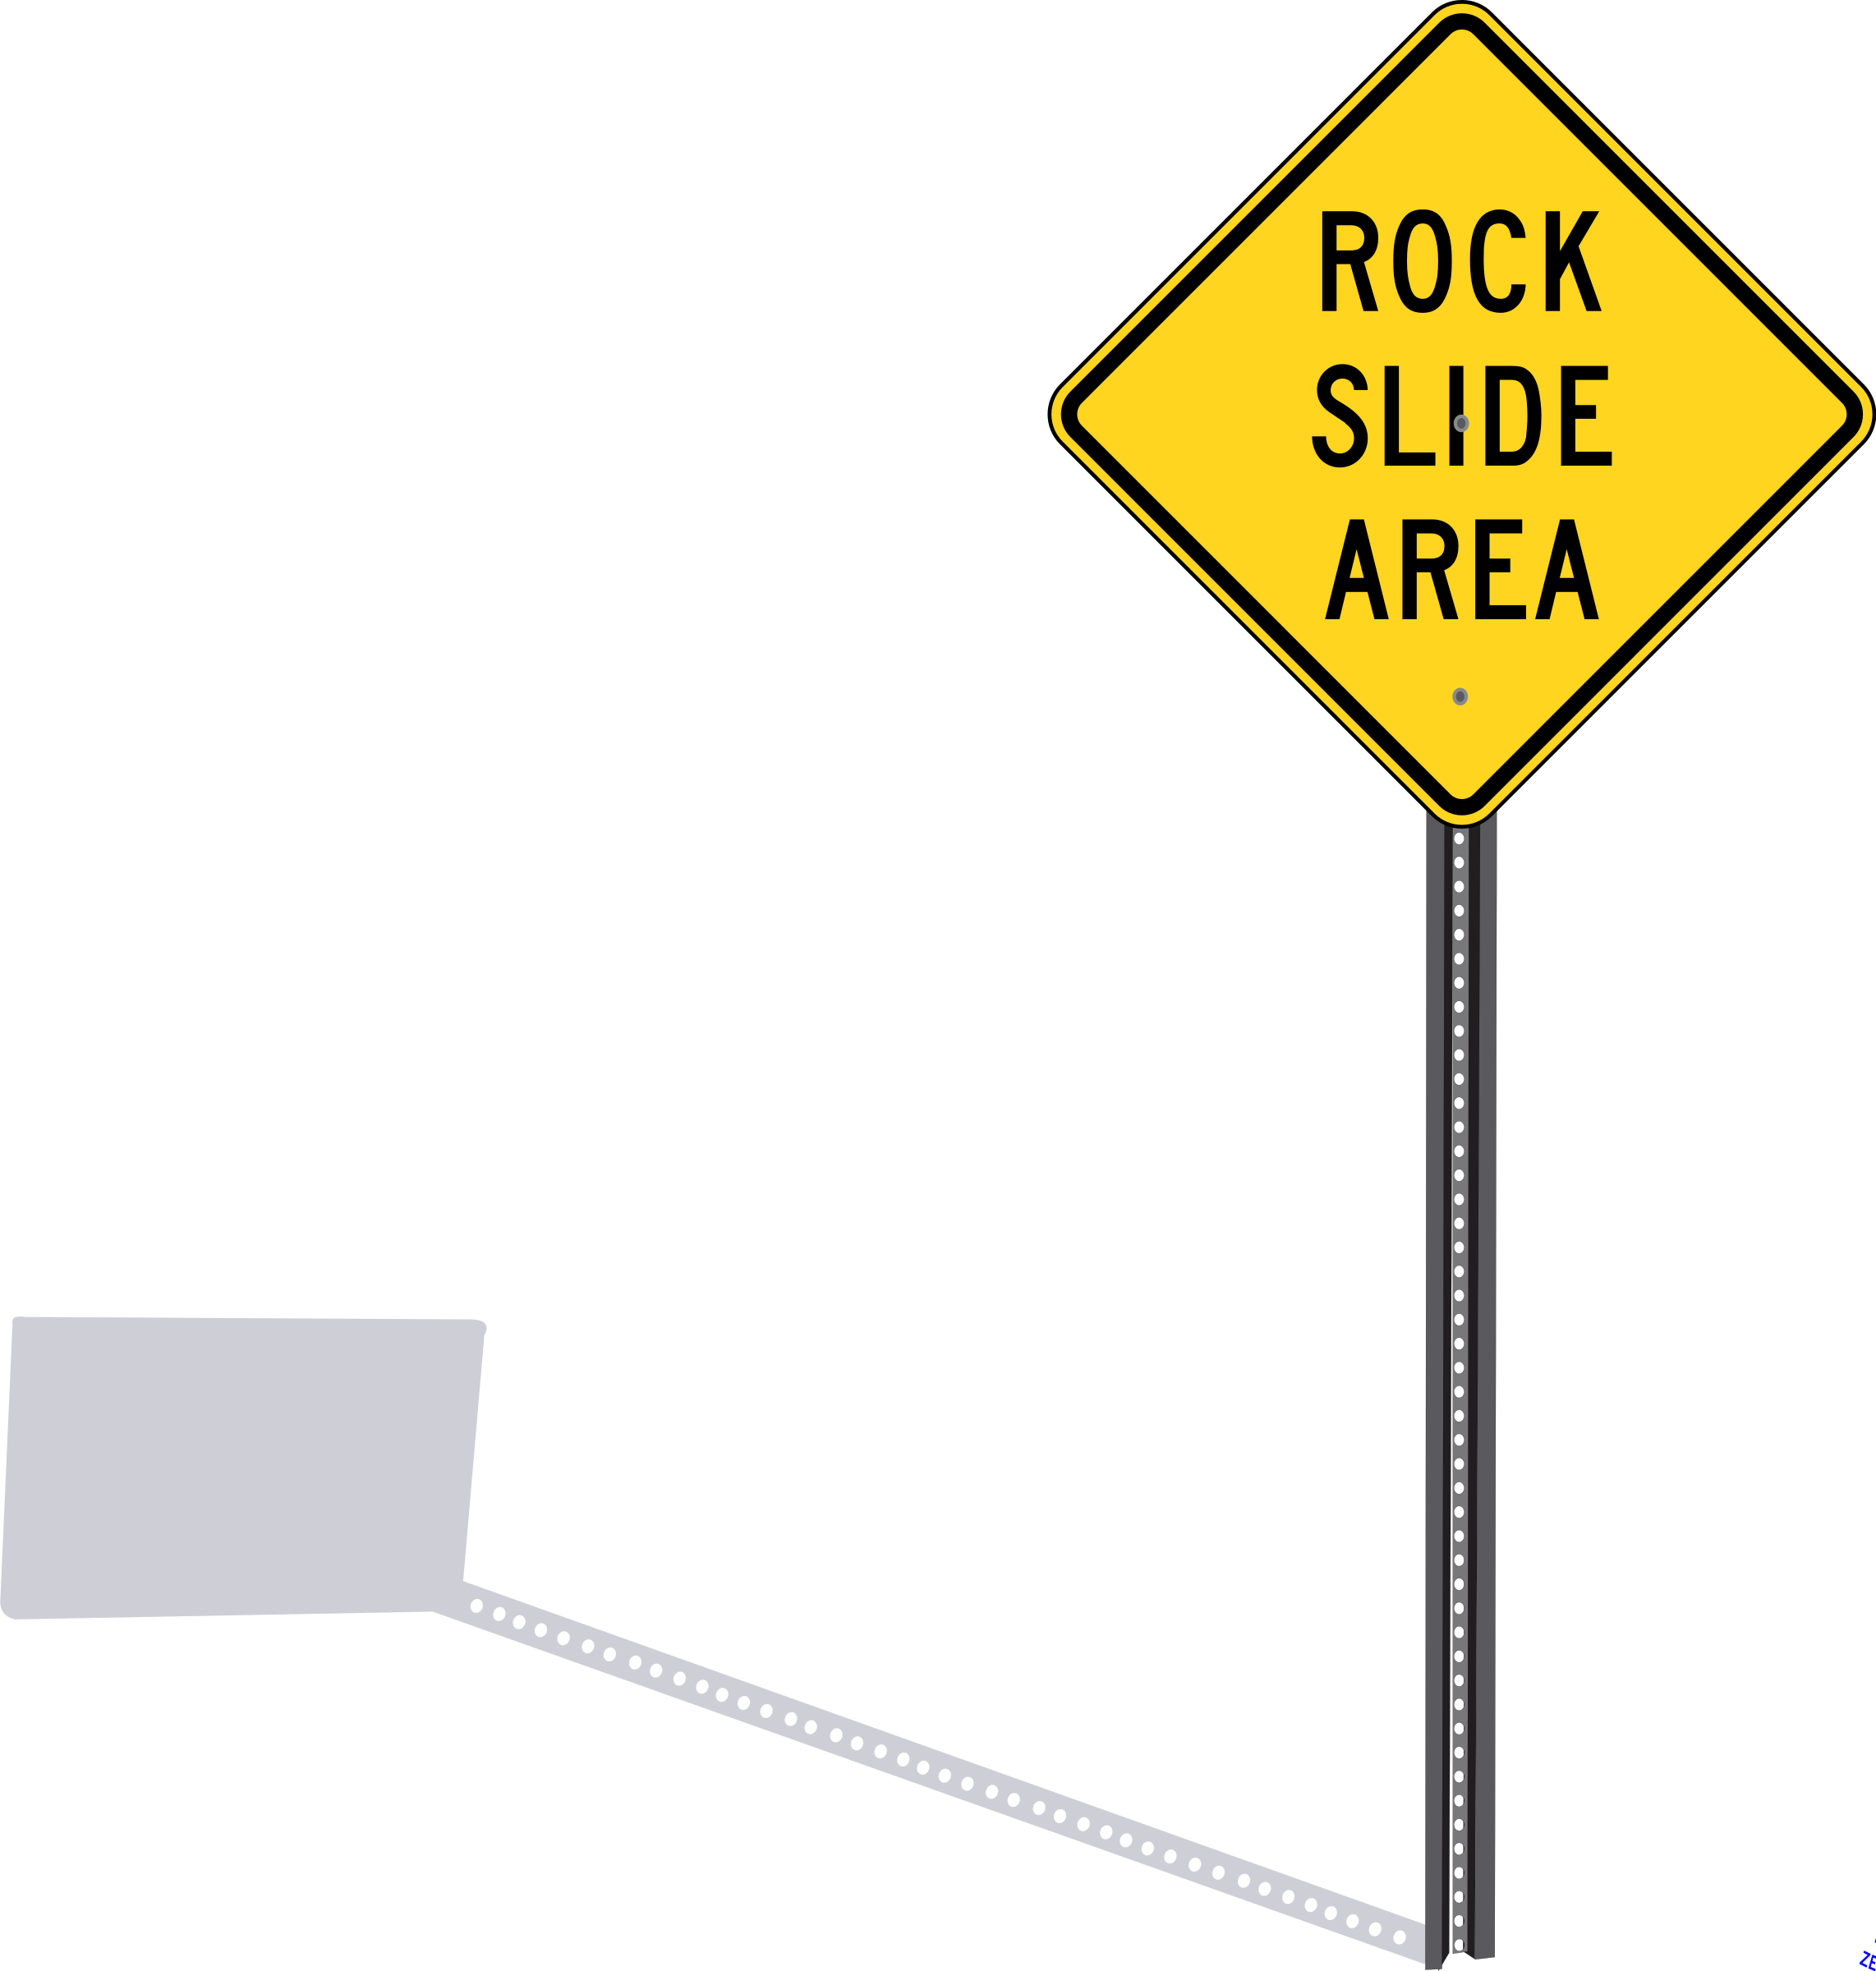 Rockslide sign with shadow by Rfc1394